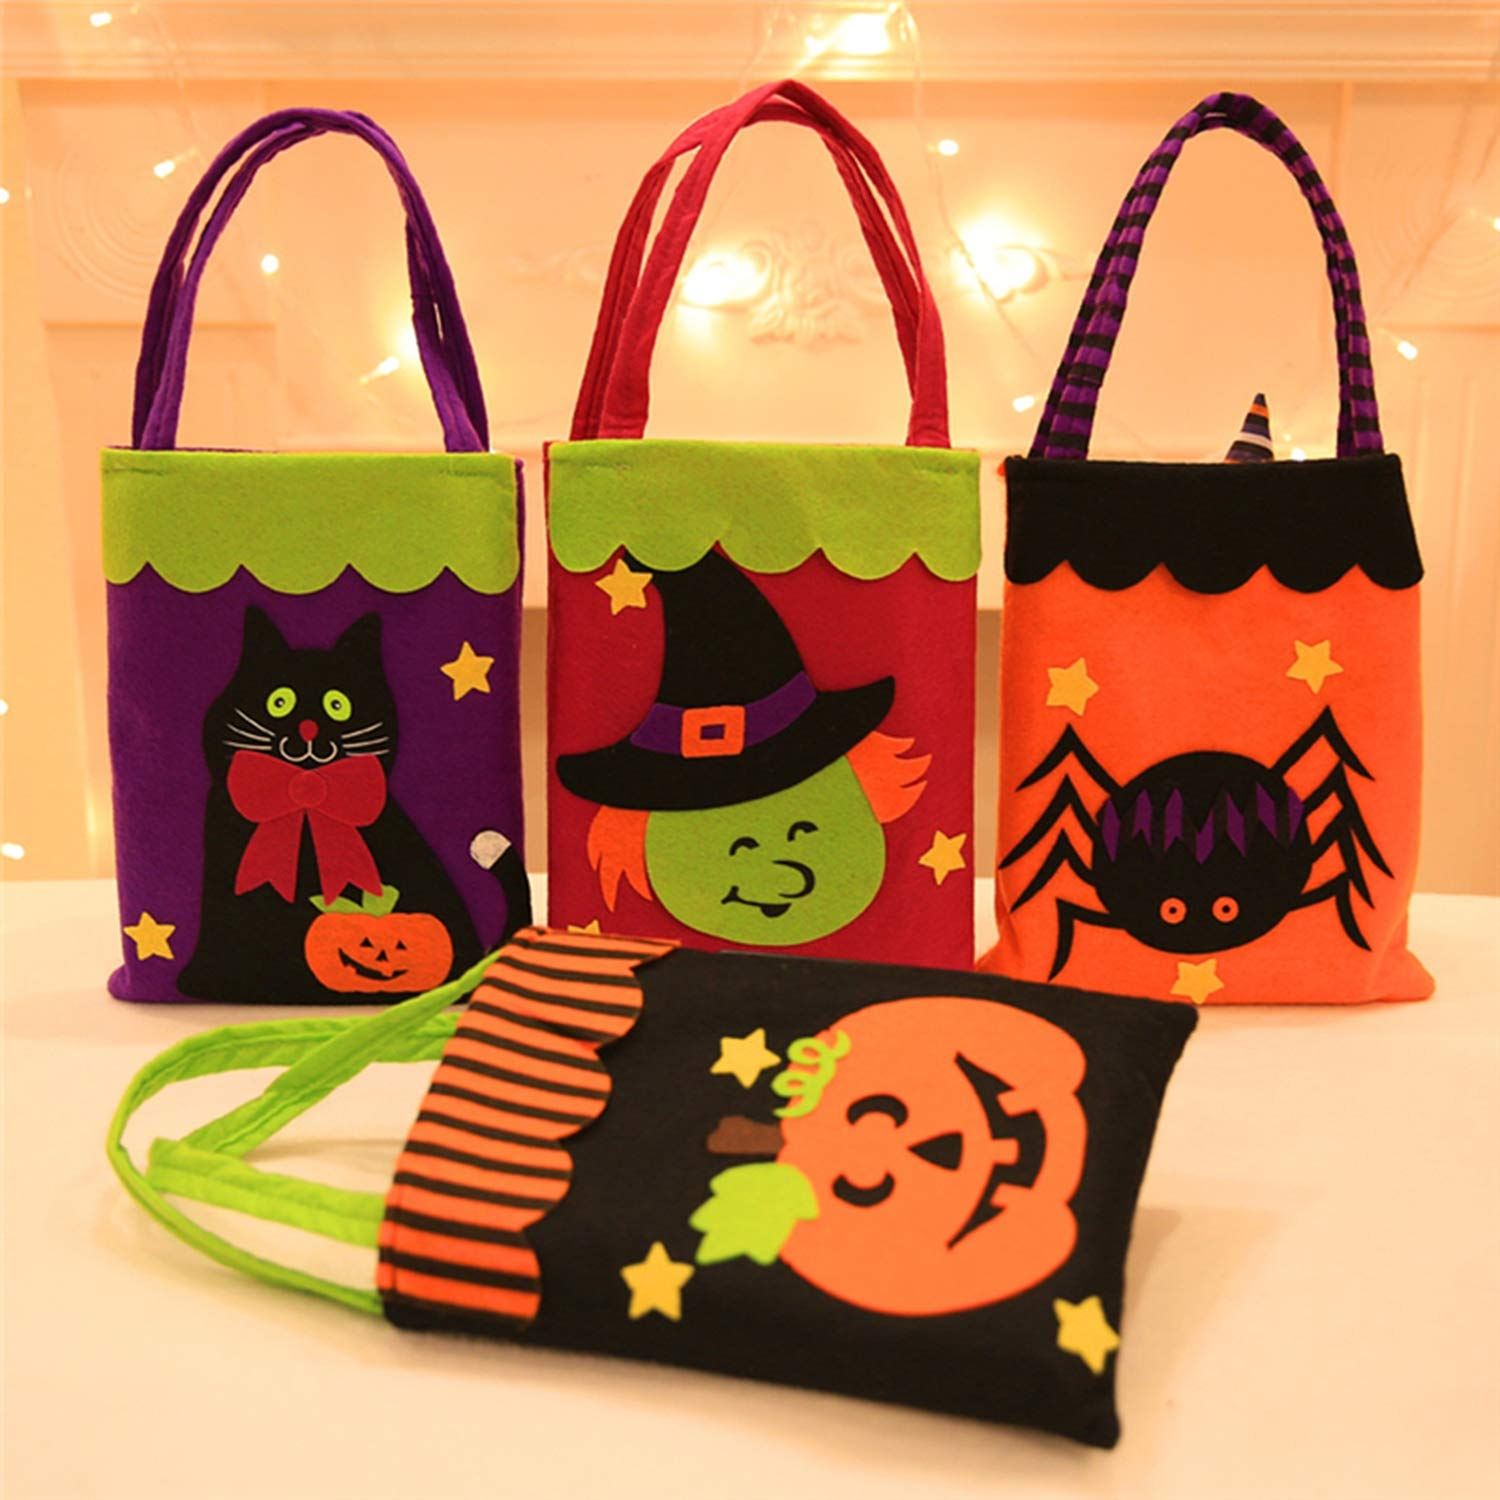 Halloween Candy Bag Gift Bags Pumpkin Trick Or Treat Bags Sacks Gift for Kids Event Party,D by Acereima (Image #3)